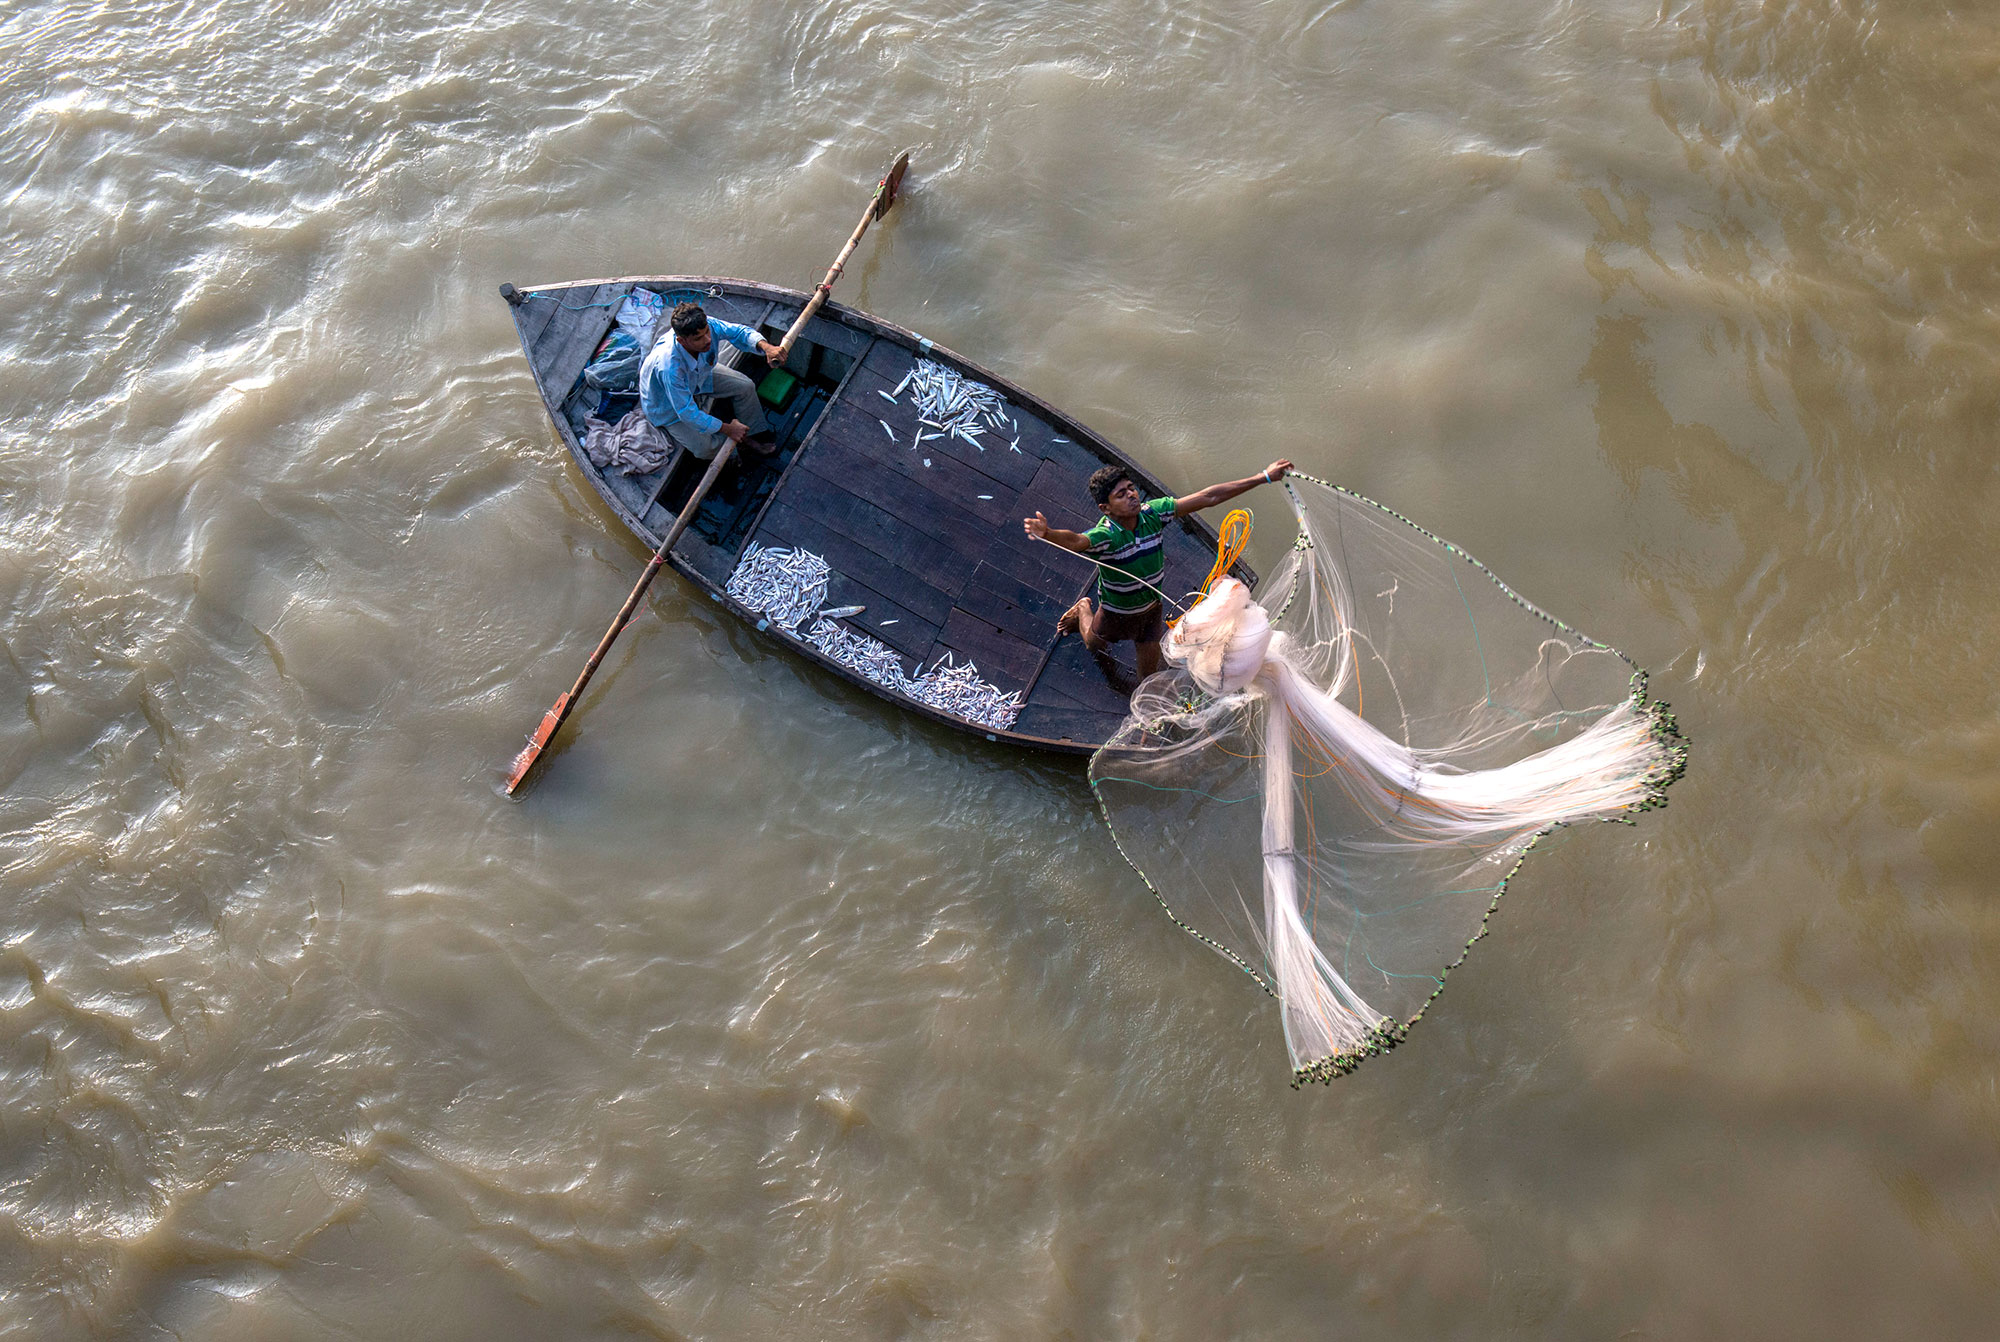 Above Kanpur, India, fishermen test their luck below an irrigation / flood weir. Most regions of the Ganges forbide fishing in its sacred waters but a Muslim community in the Kanpur region, see the river as an economic oppurtunity despite tails of toxic waters.